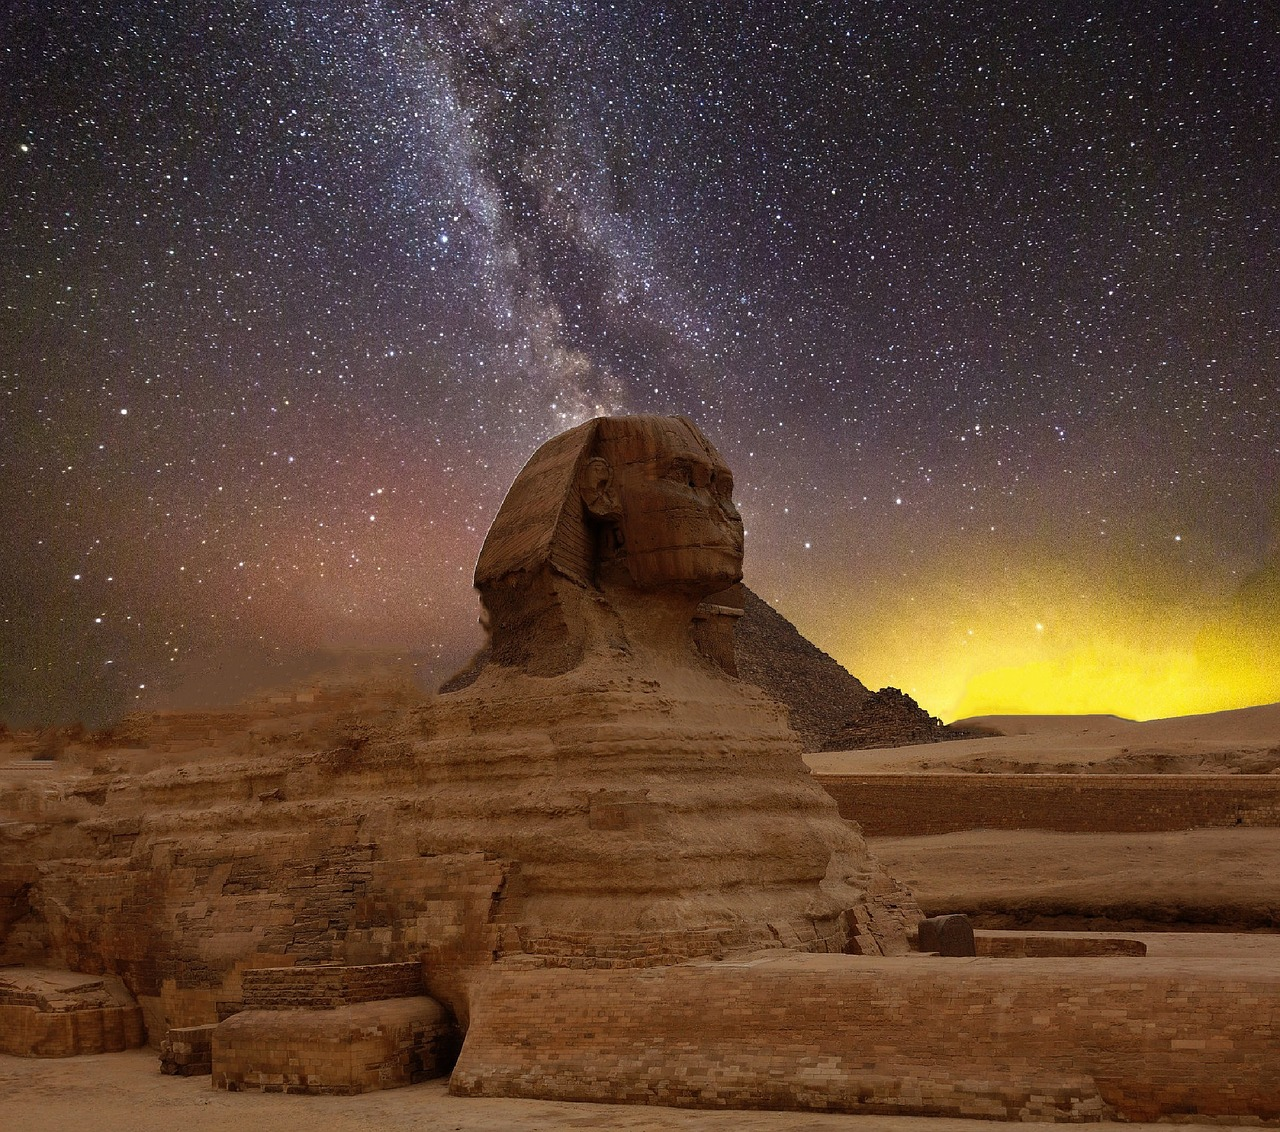 The-Great-Sphinx